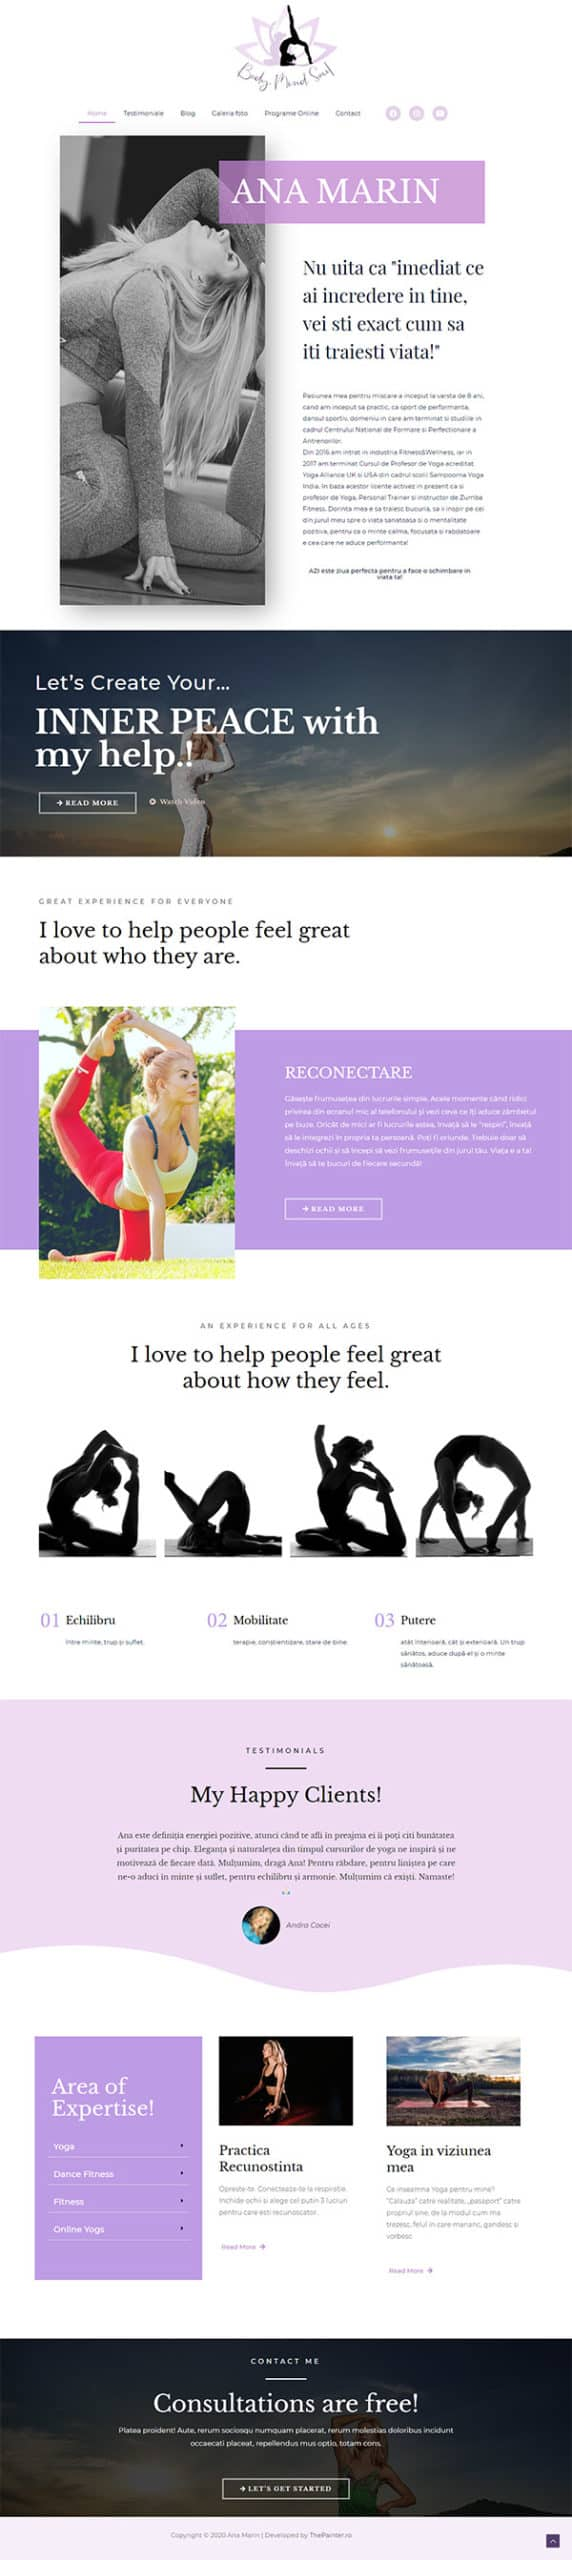 Yoga with Ana website